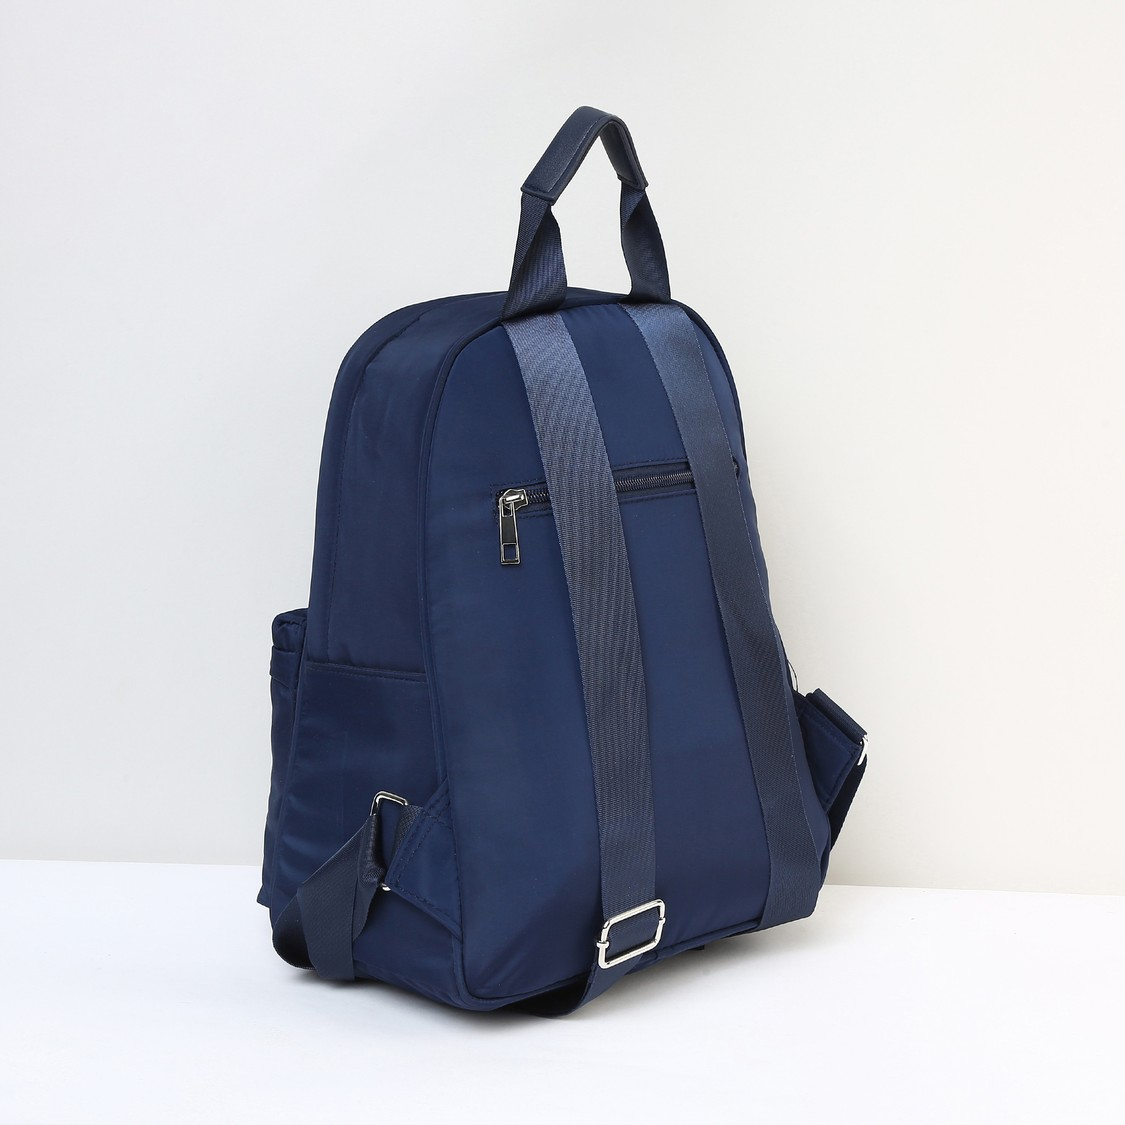 MAX Printed Backpack with Pouch